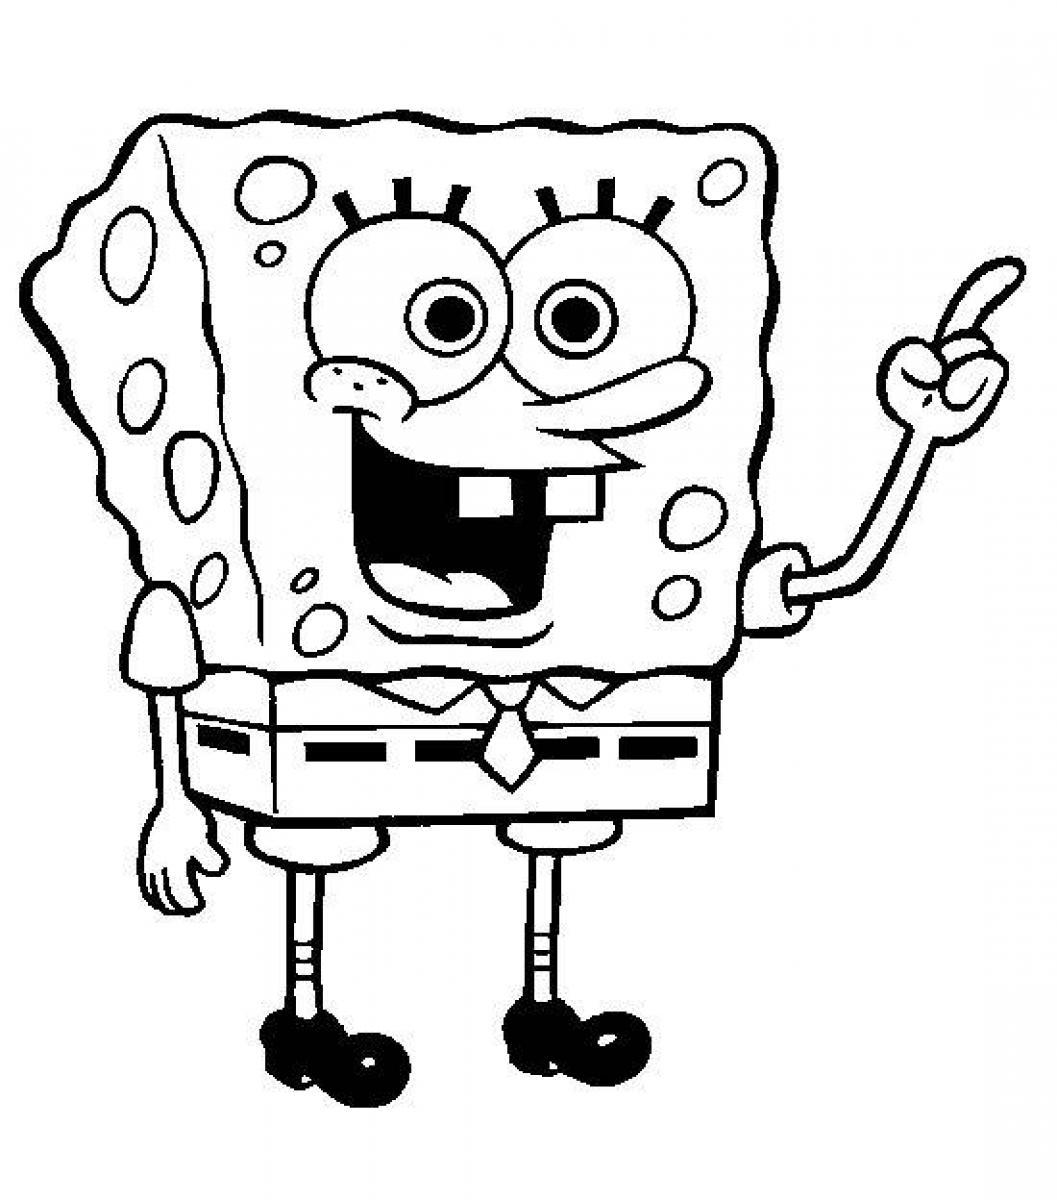 Printable Spongebob Squarepants Coloring Pages Coloring Me Coloring Pages Sponge Bob